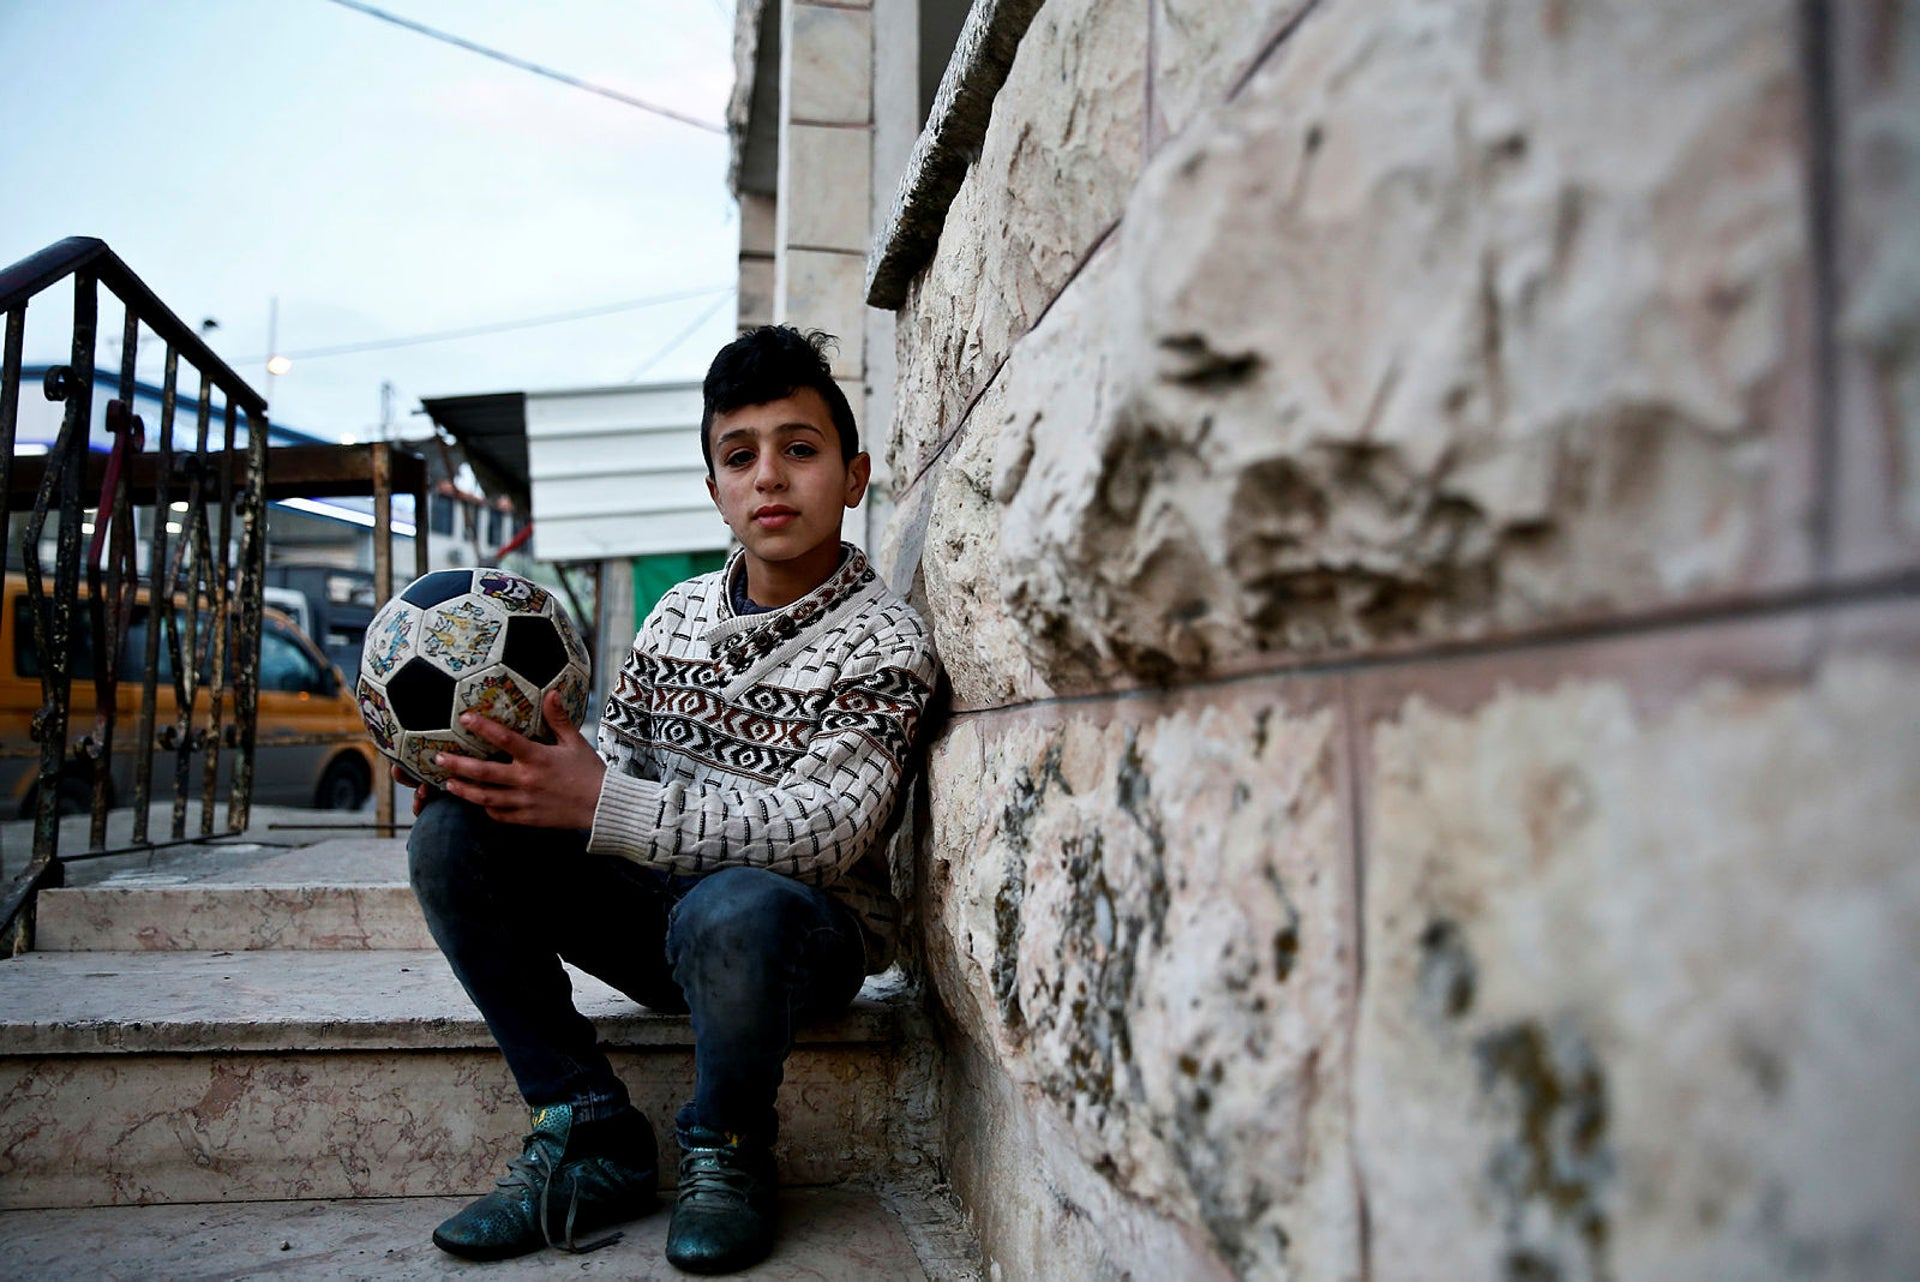 'Endless trip to hell': Israel jails hundreds of ...